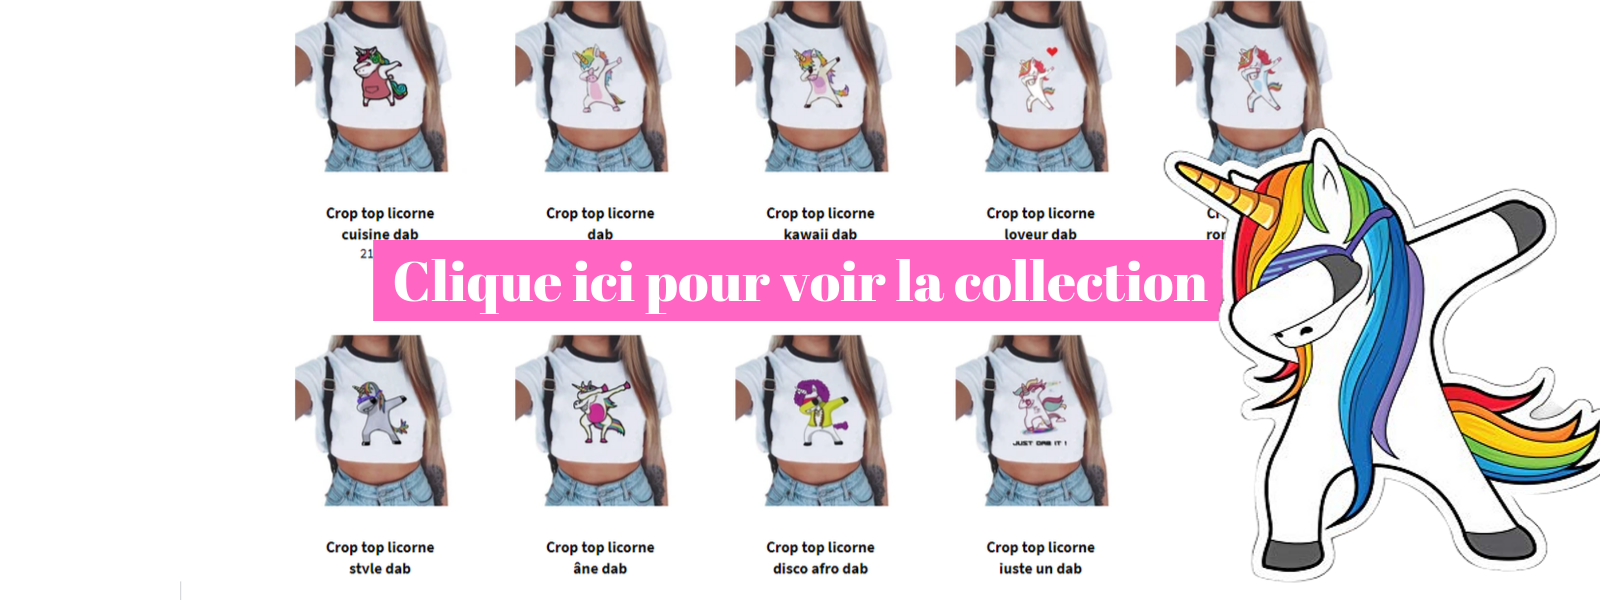 https://www.royaume-de-licorne.fr/collections/crop-top-licorne/dab